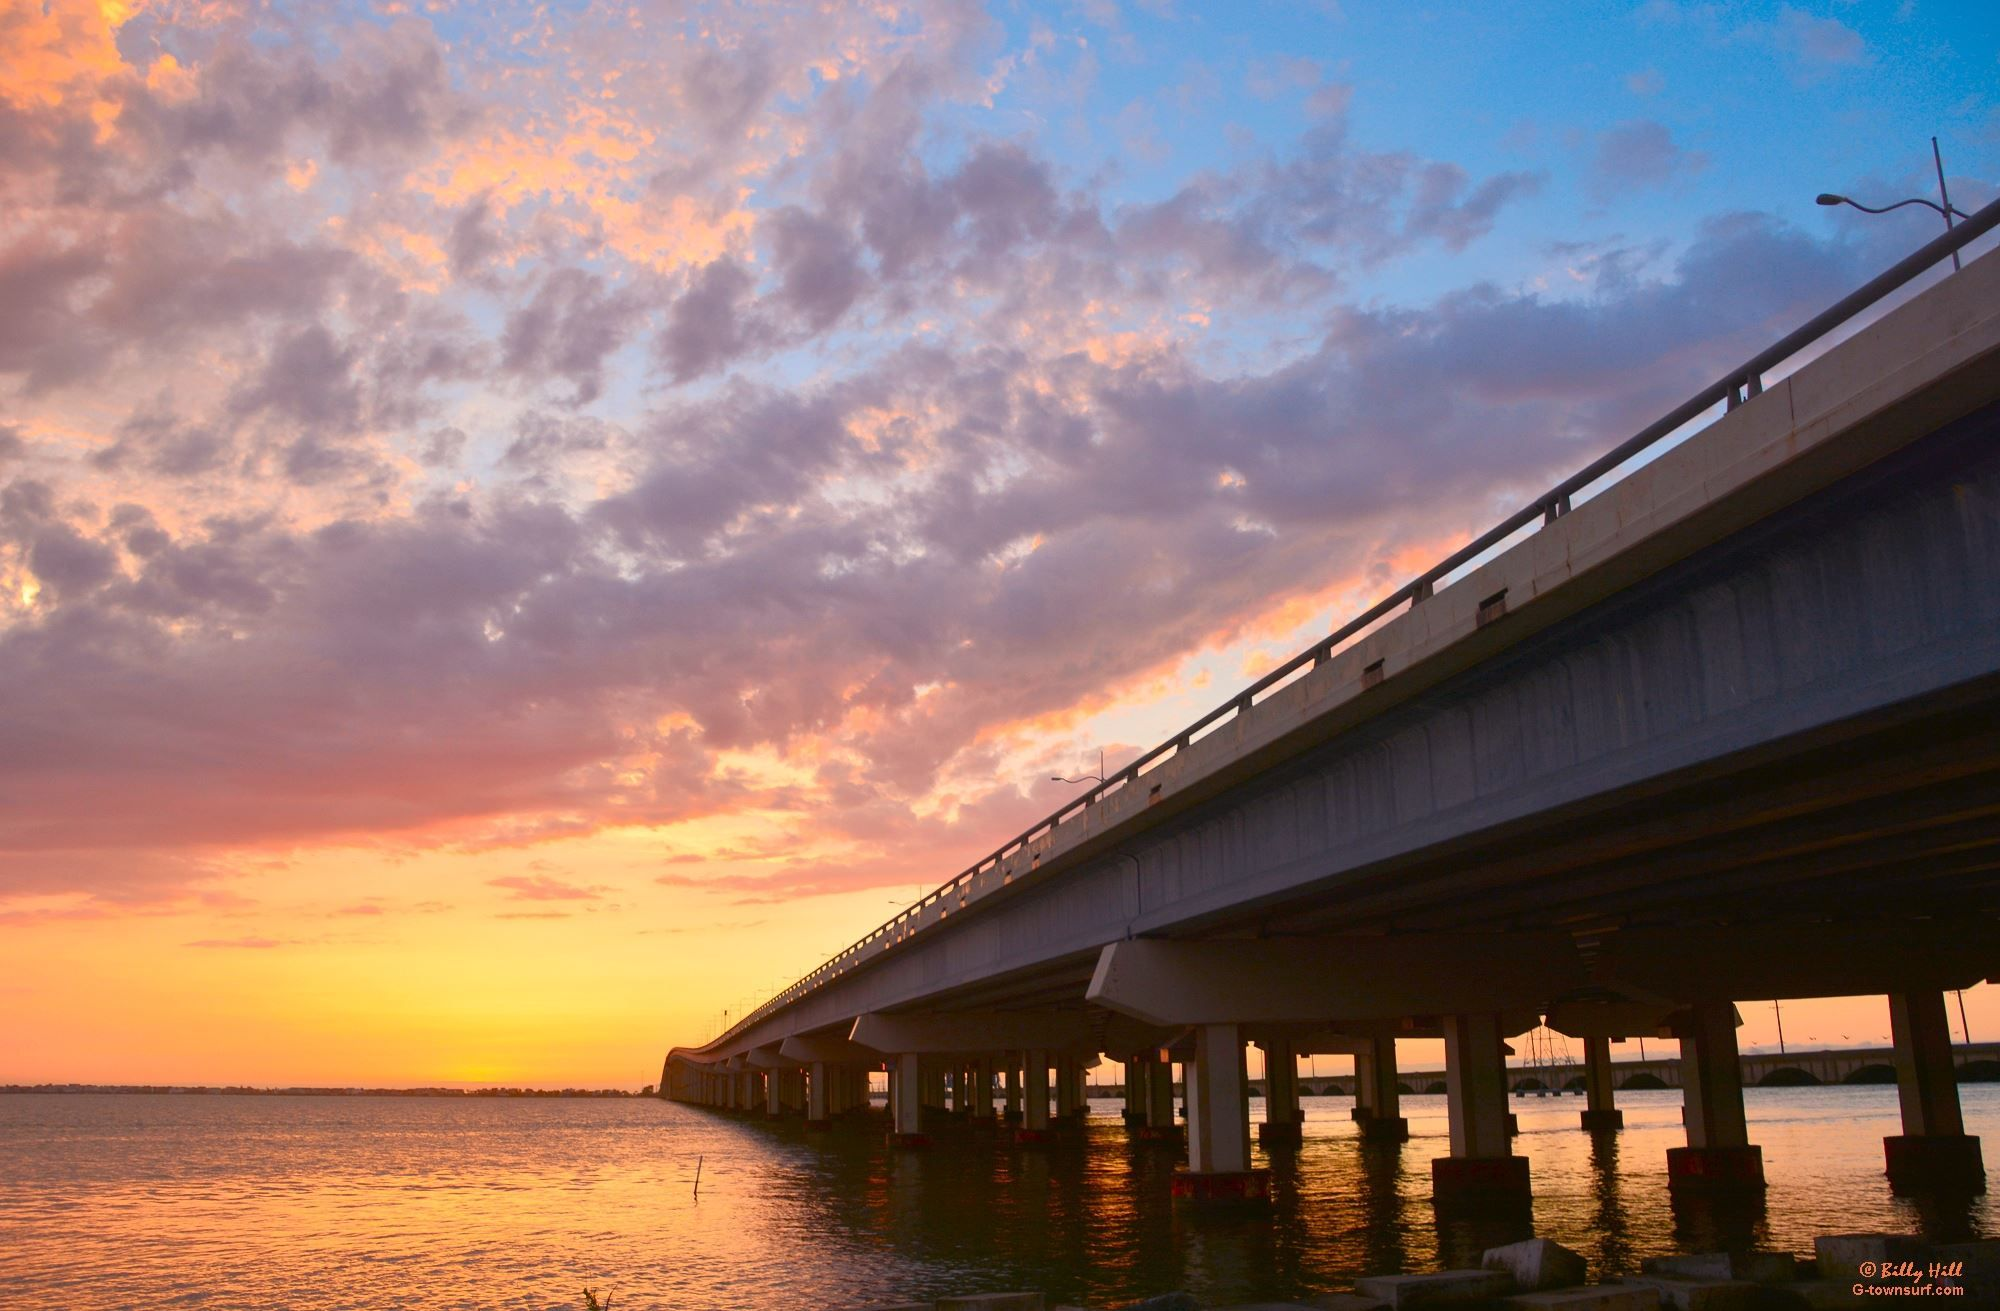 under the causeway photo by g town surf paradise island tx